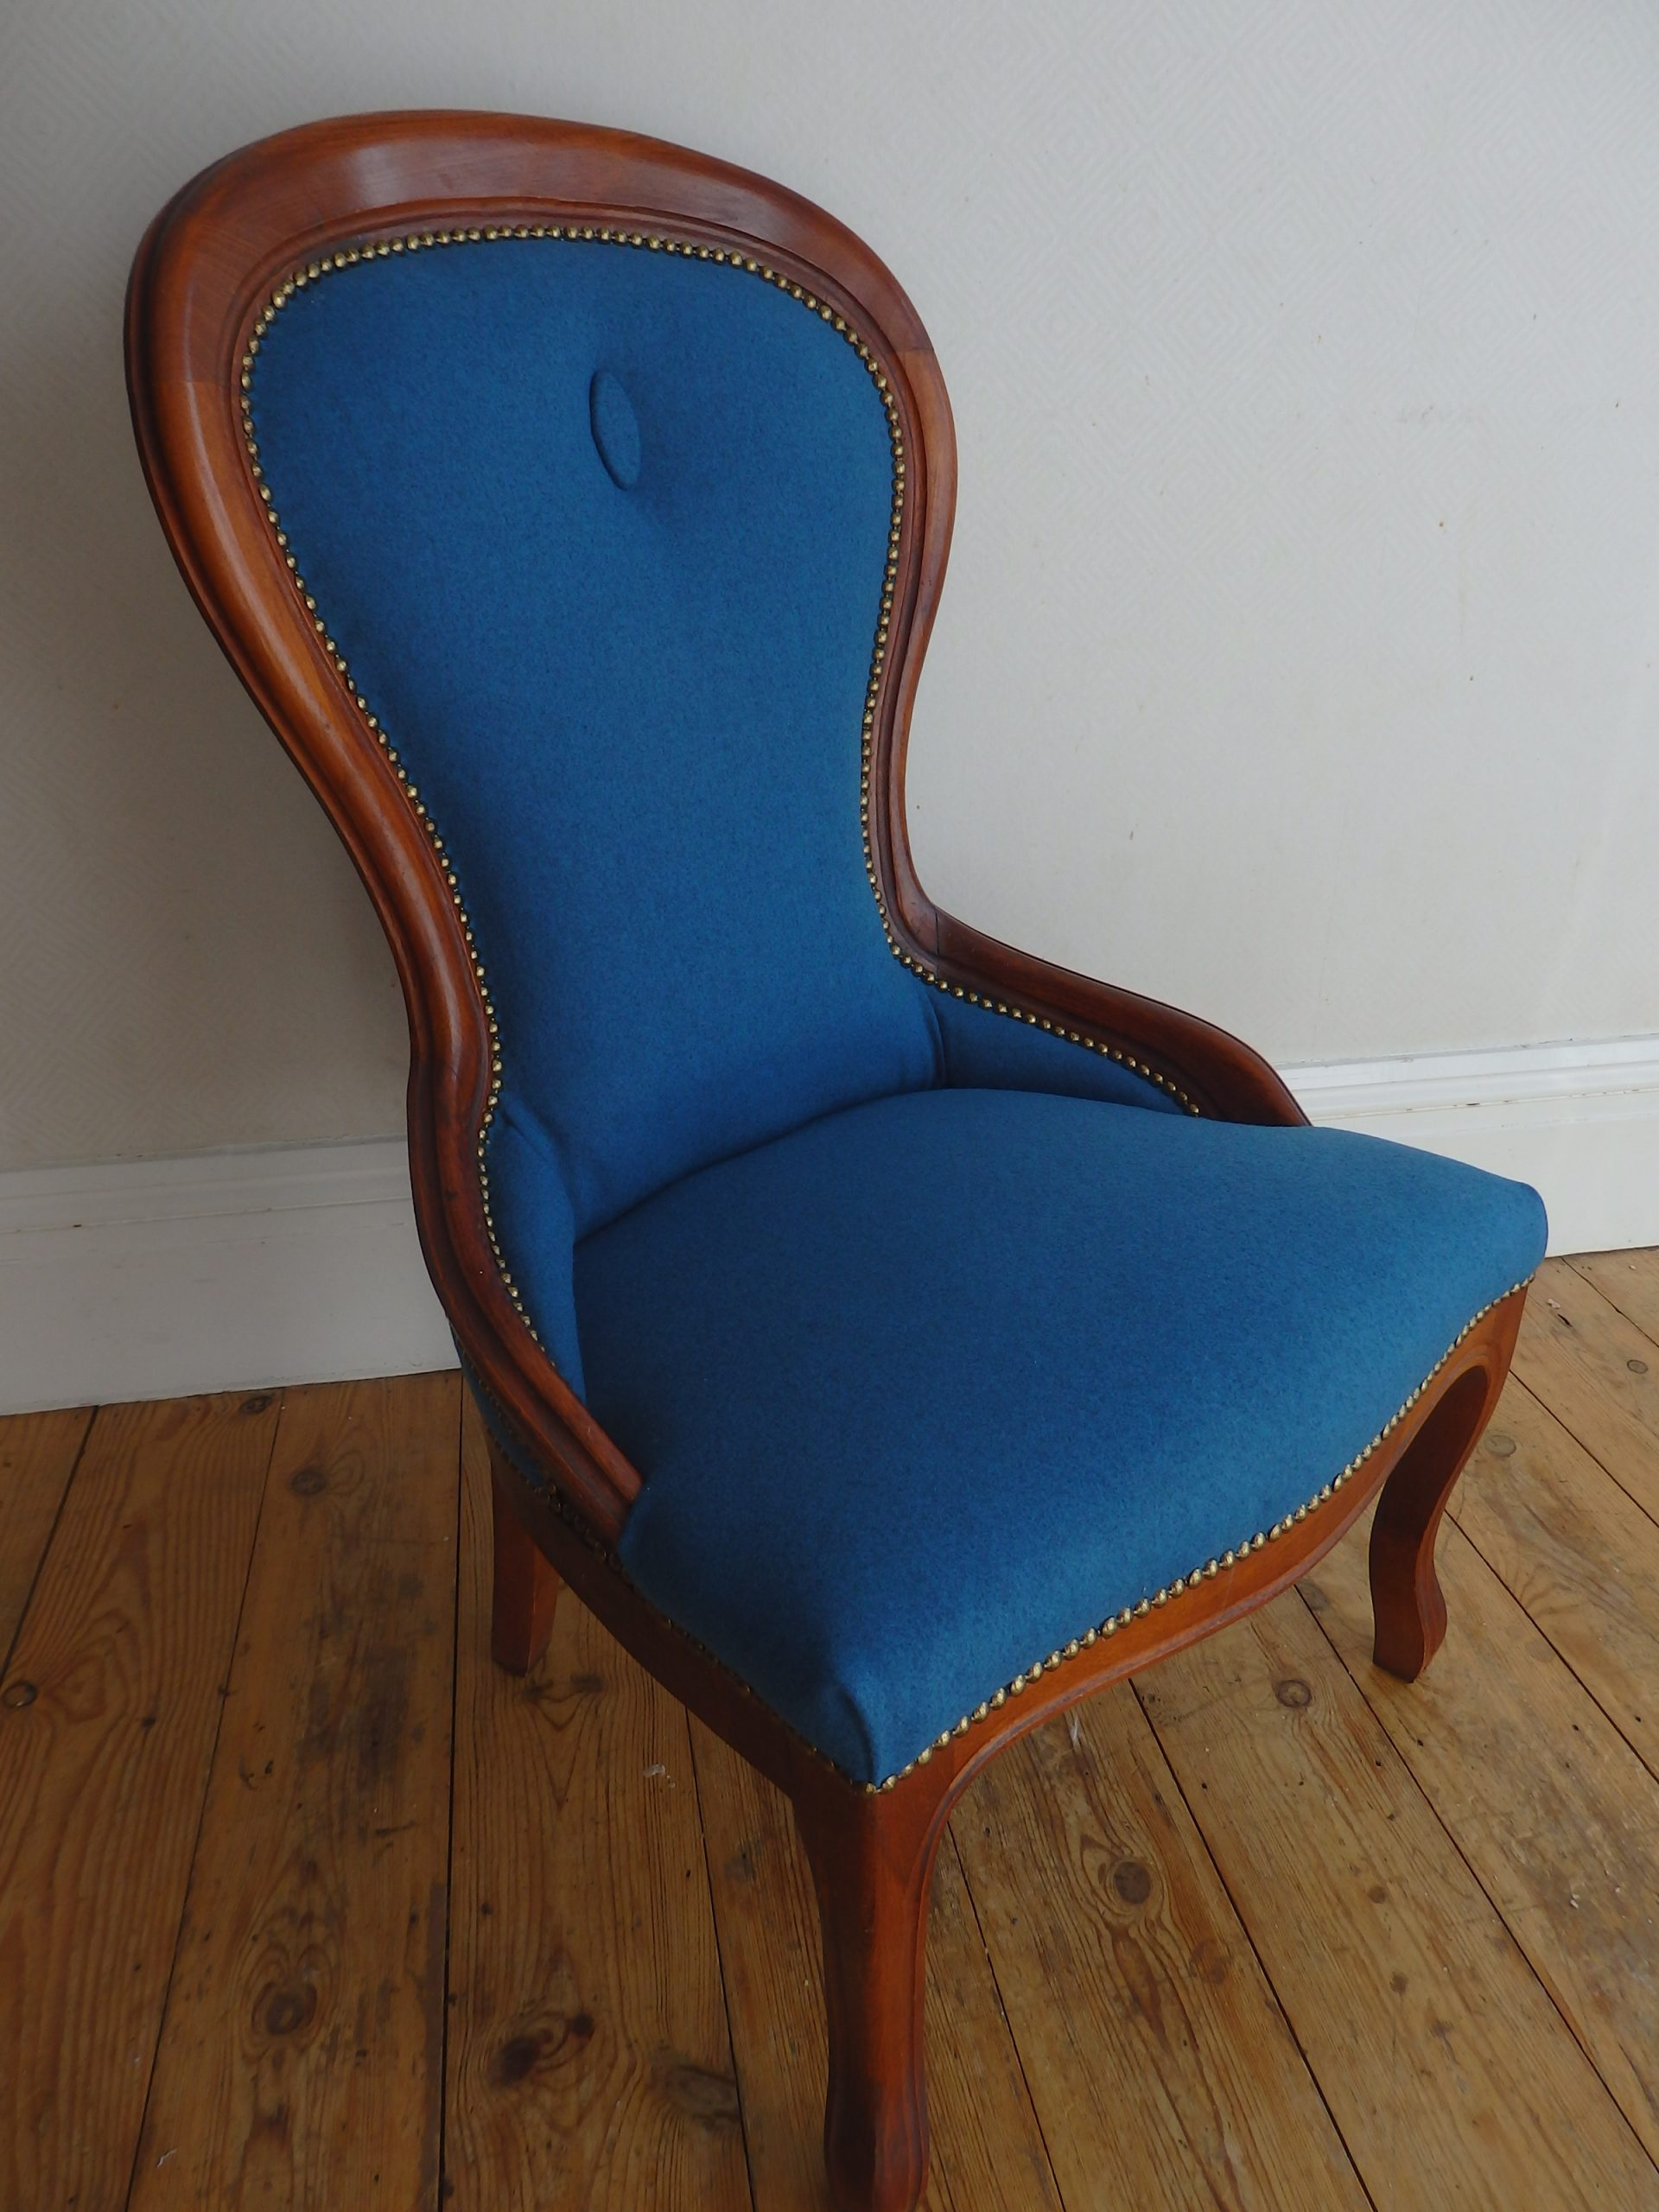 Re-Covered Reproduction Slipper Chair